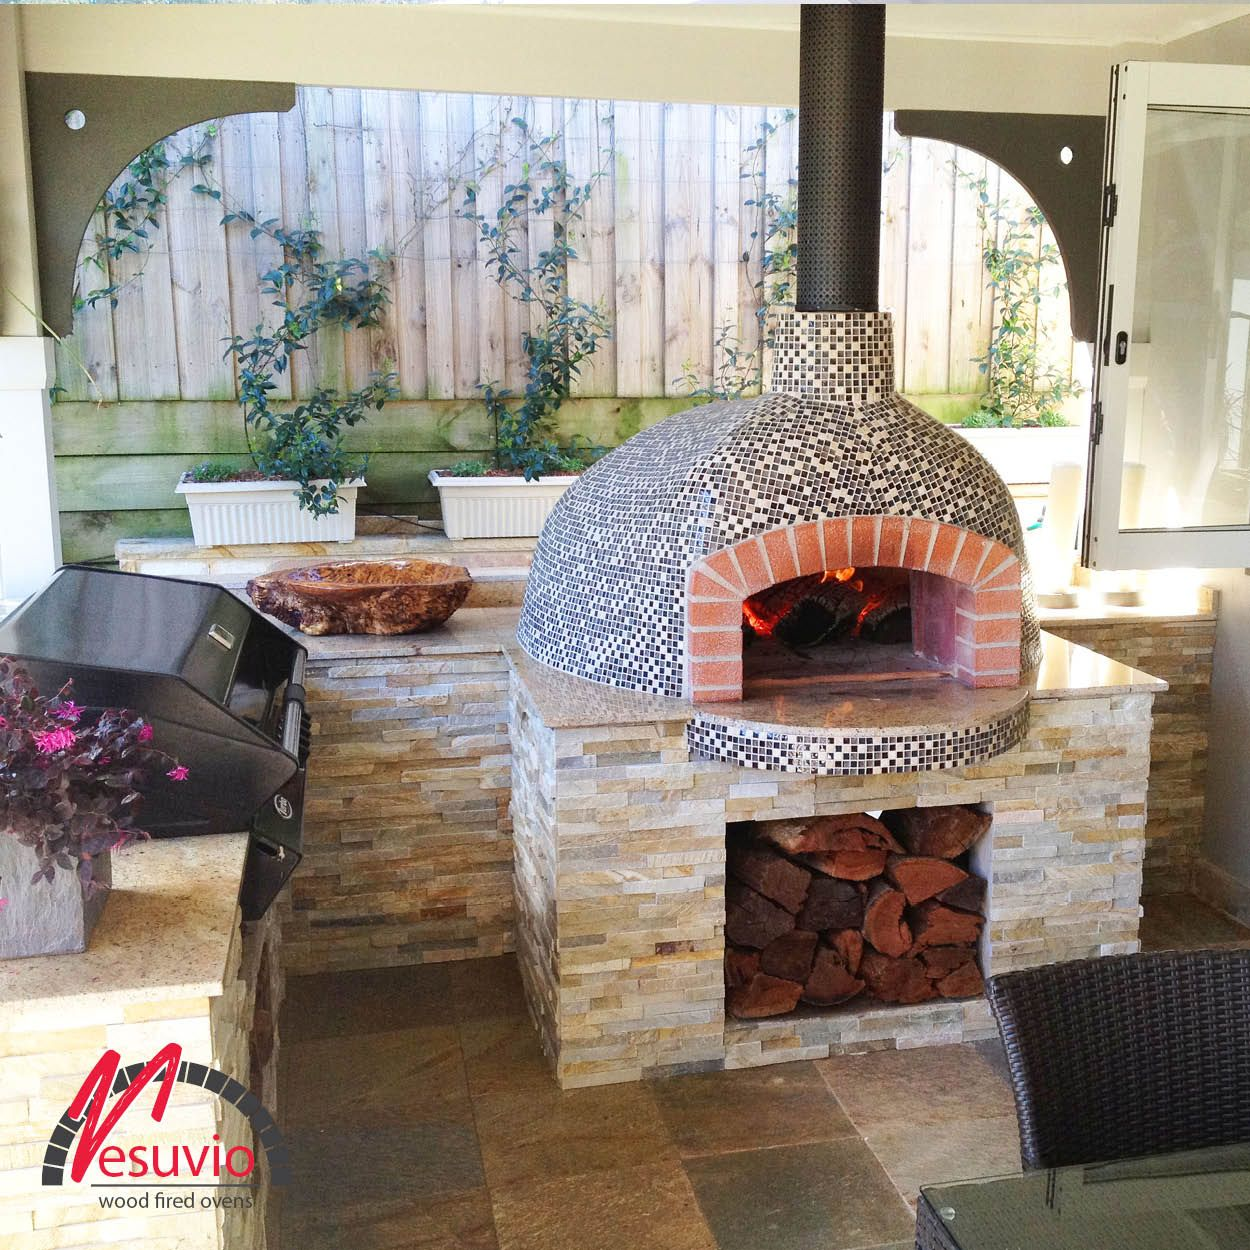 5 Perfectly Amazing Outdoor Kitchen Layout Ideas: Pin By Judy Butler Umentum On Home And Garden